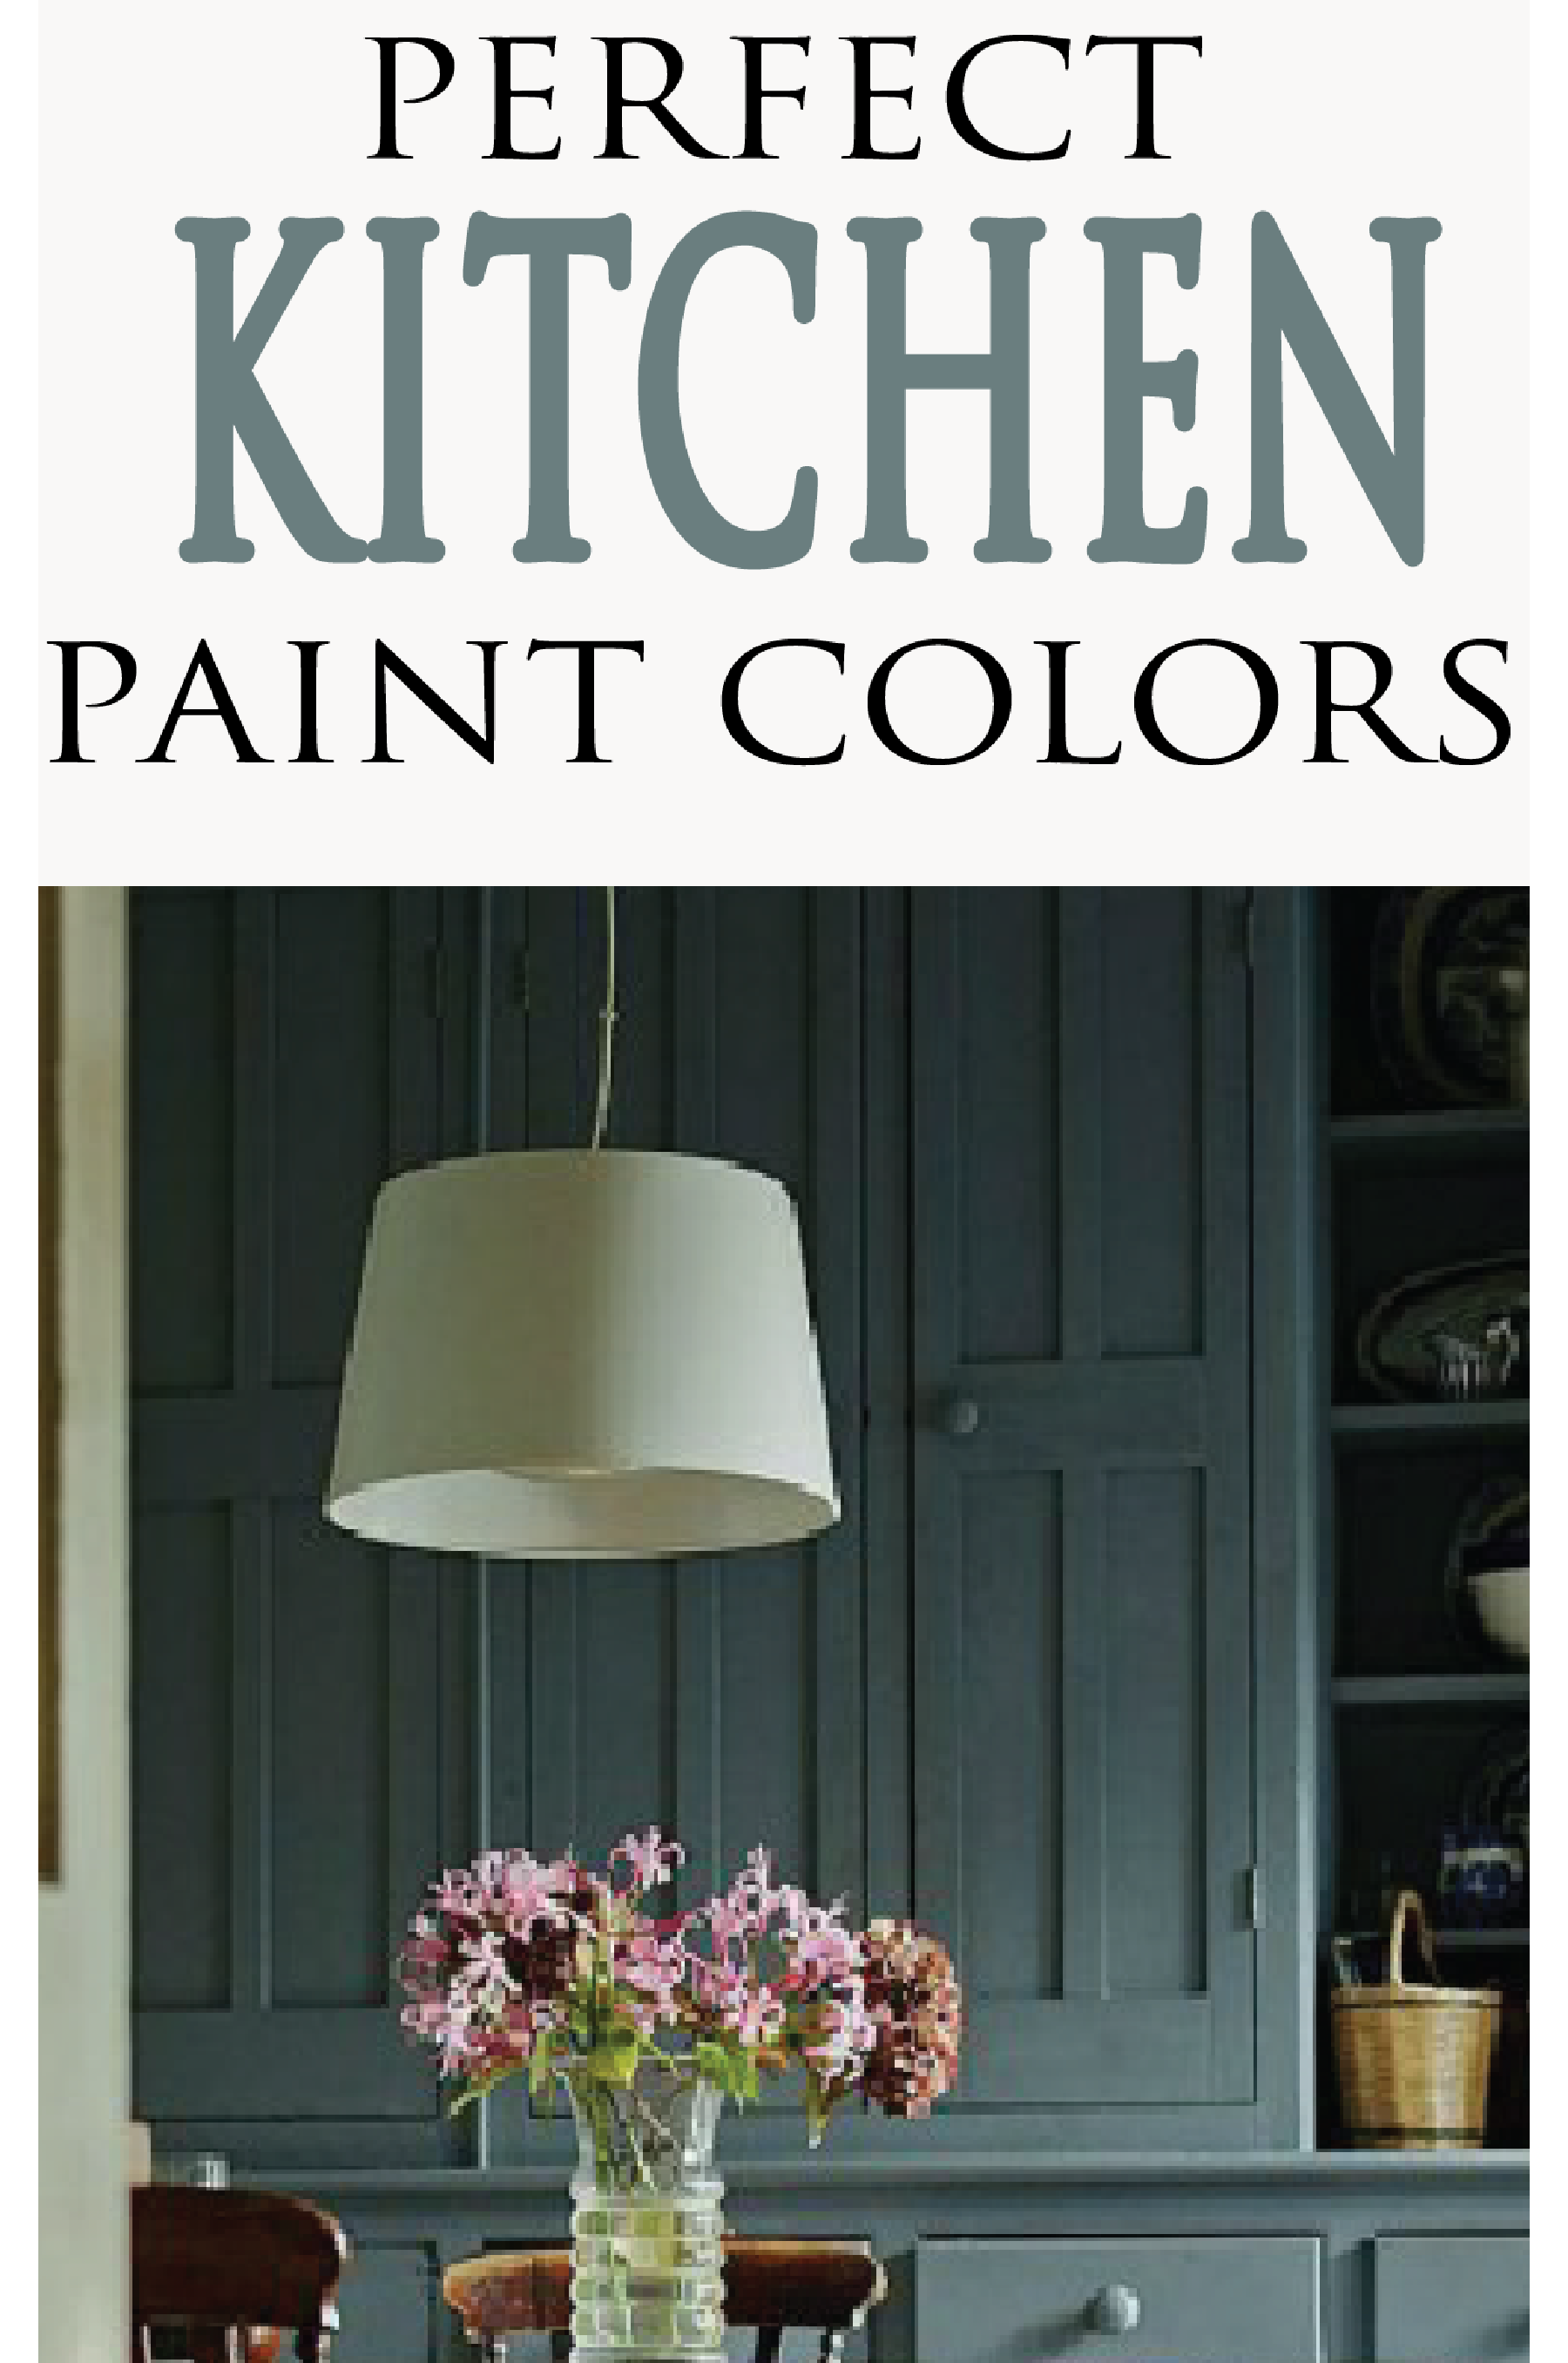 check out these perfect paint colors for your new kitchen!